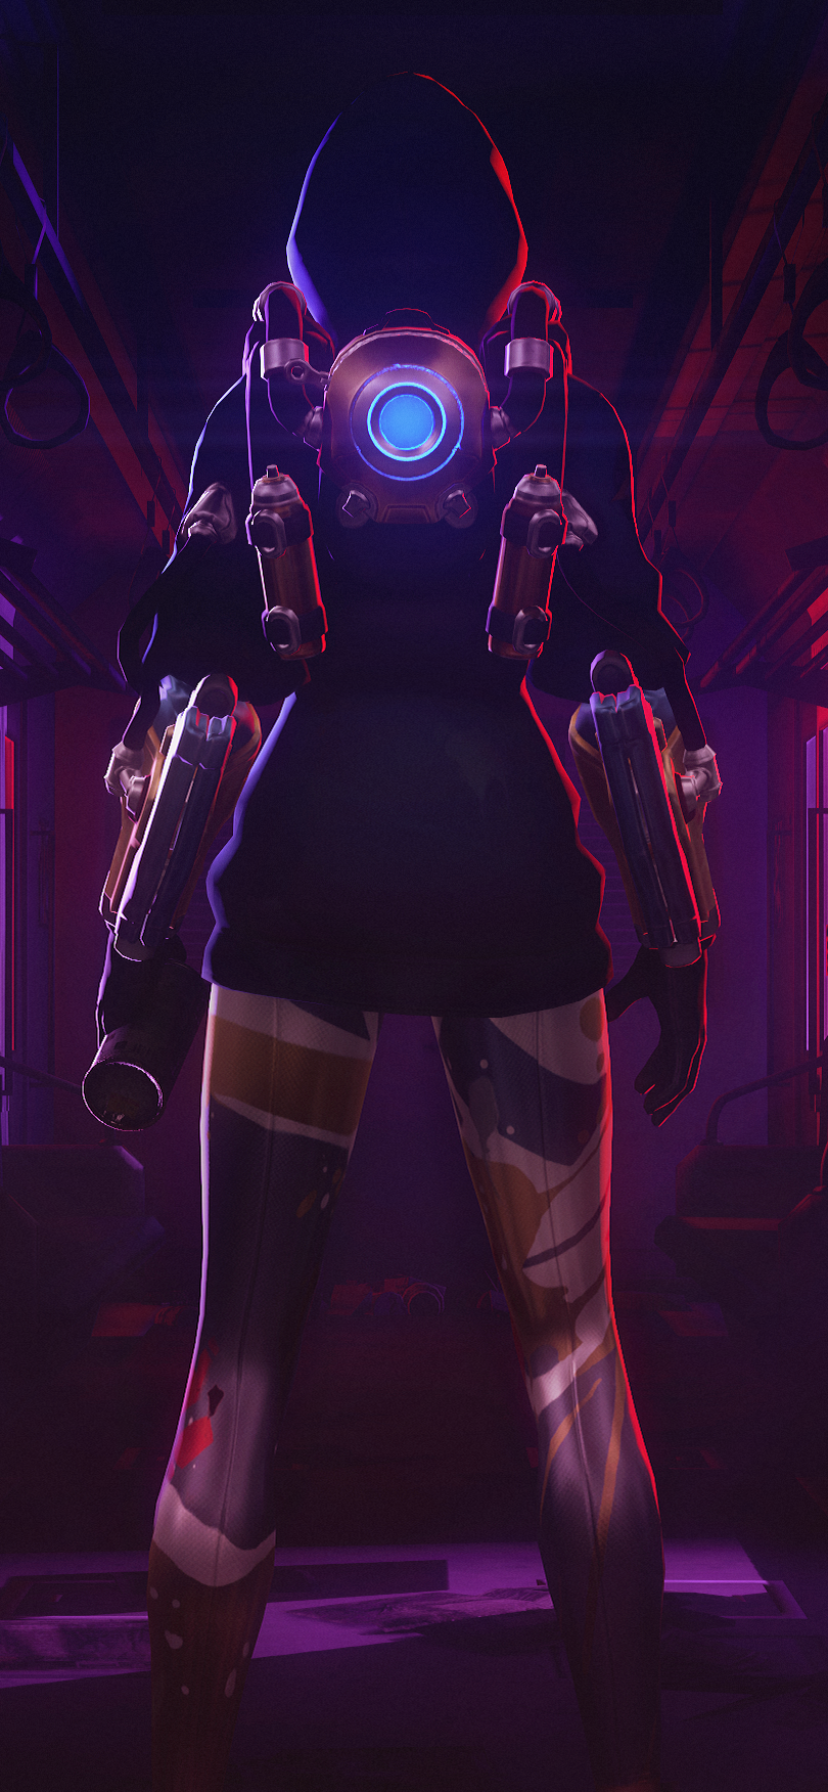 Overwatch Phone Wallpapers Download Cool Hd Free